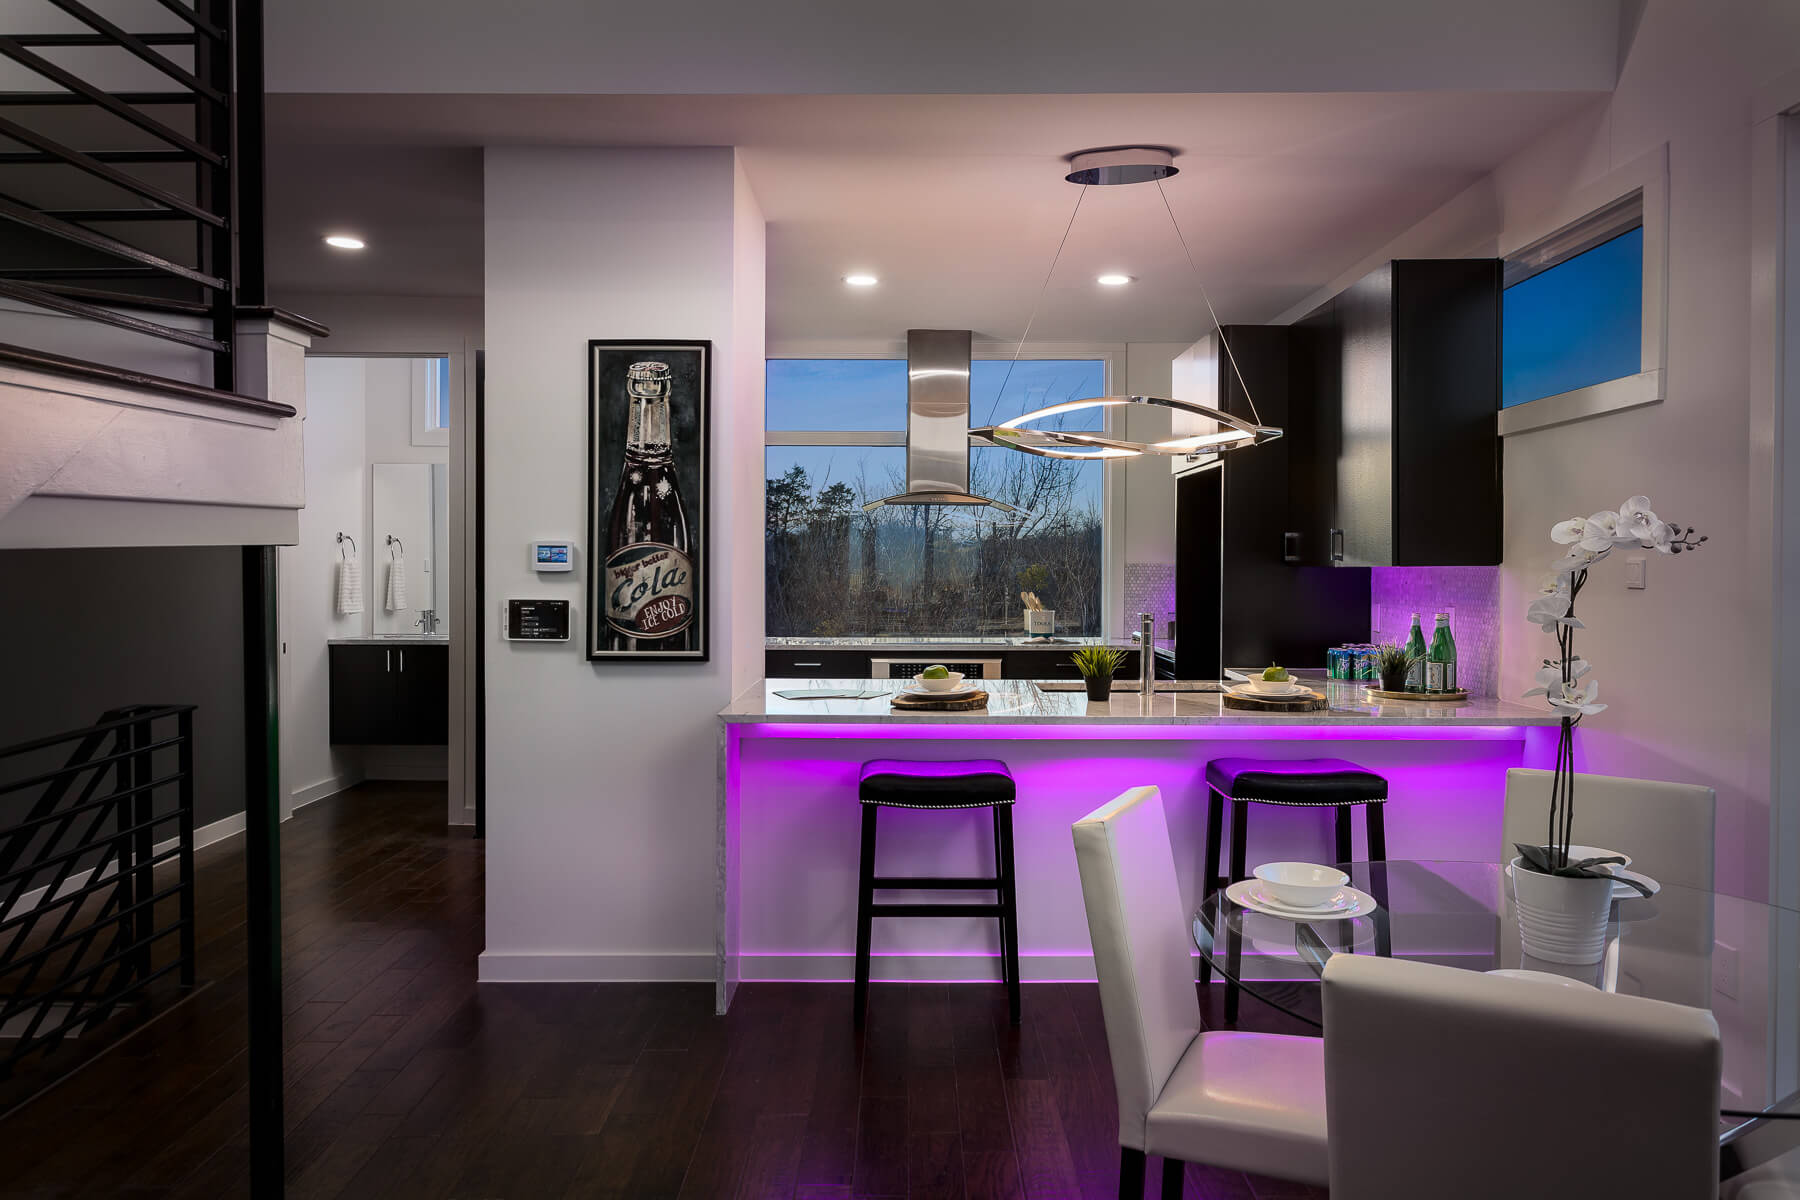 Modern kitchen with white interiors and purple accent lighting beneath counter top.